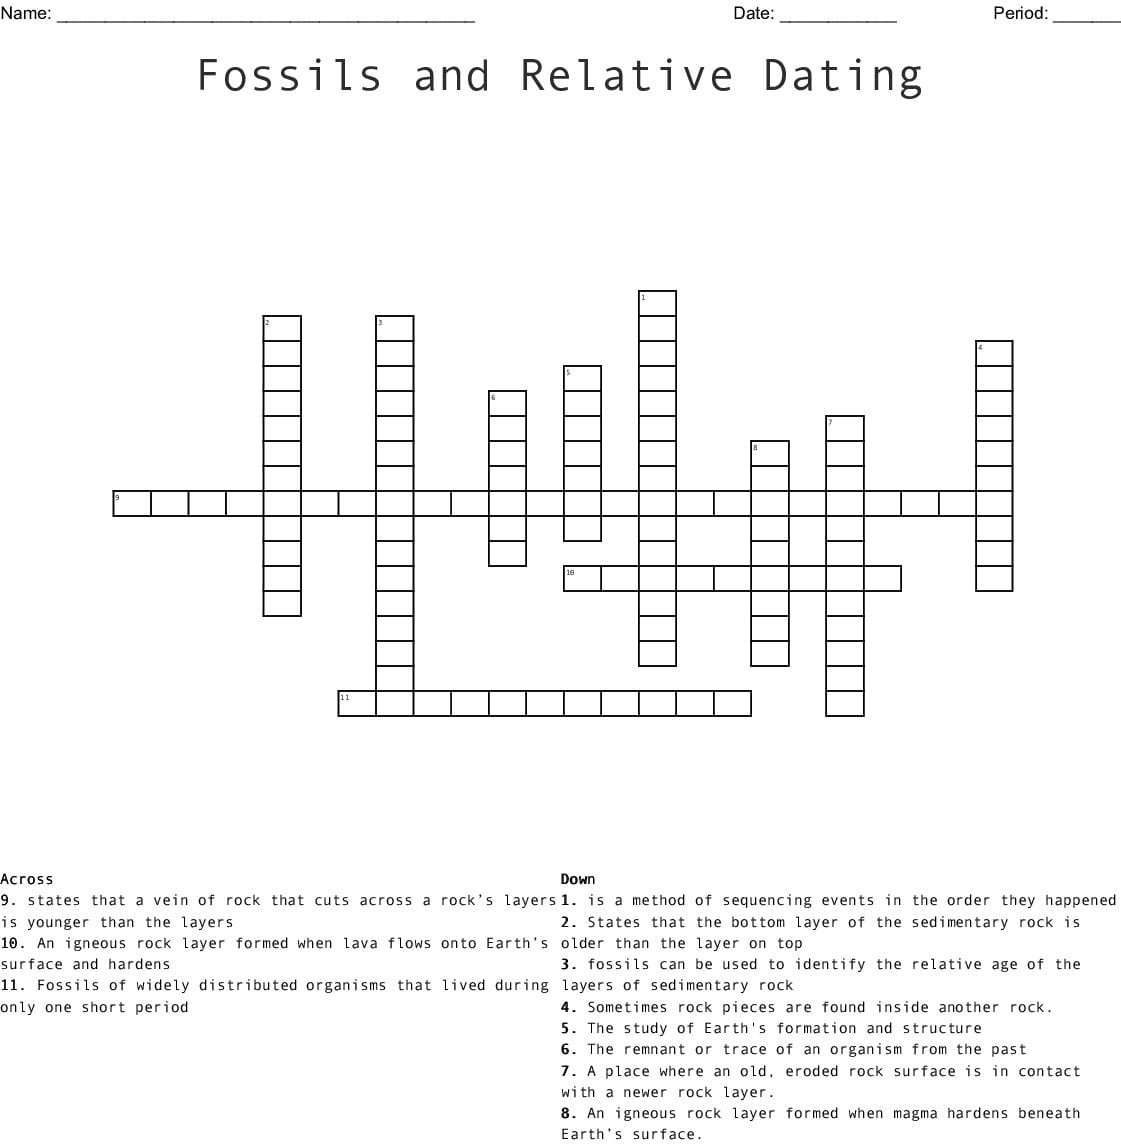 Fossils And Relative Dating Crossword Word | db-excel.com